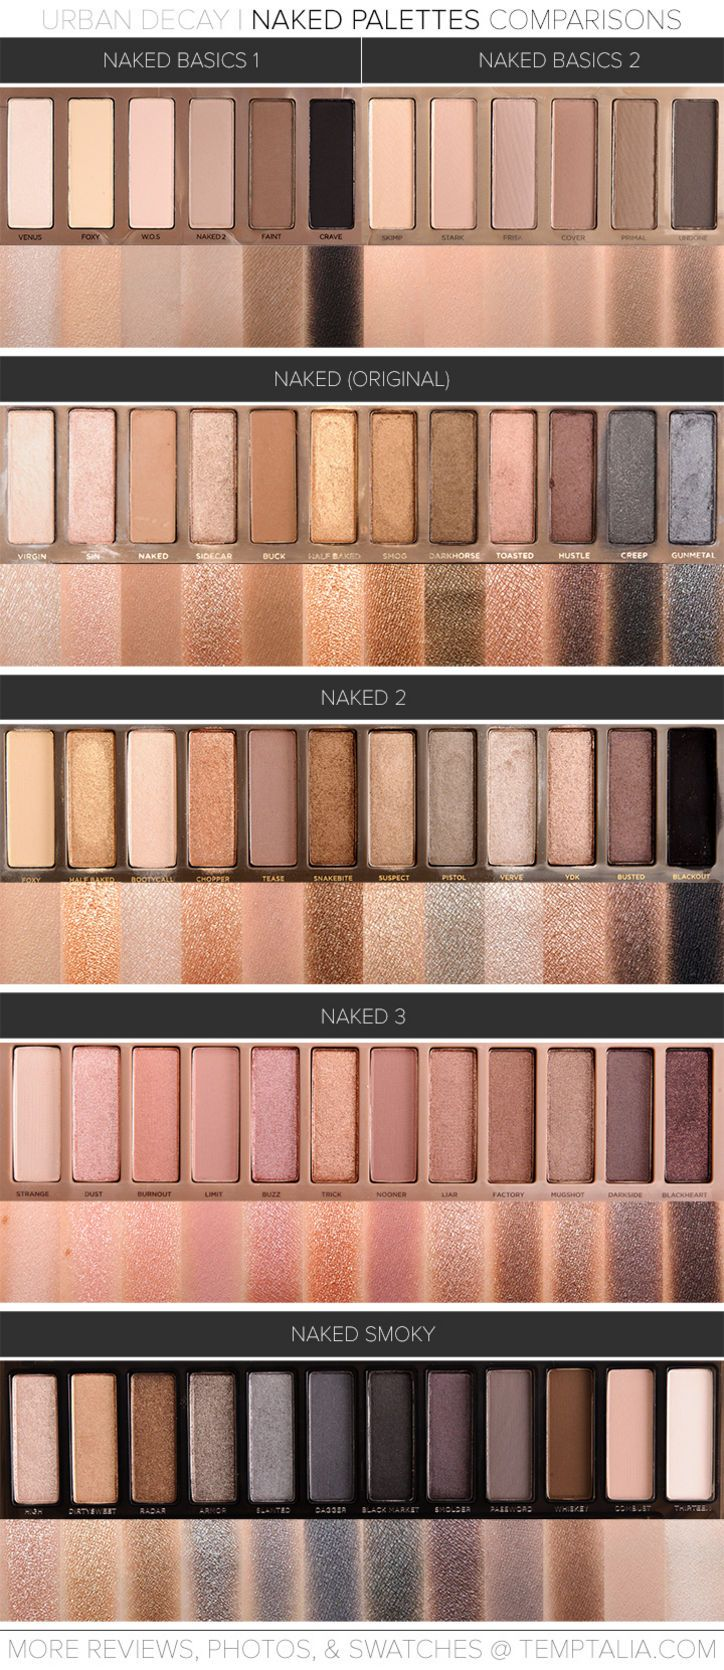 Urban Decay Naked Palette Swatches + Comparisons